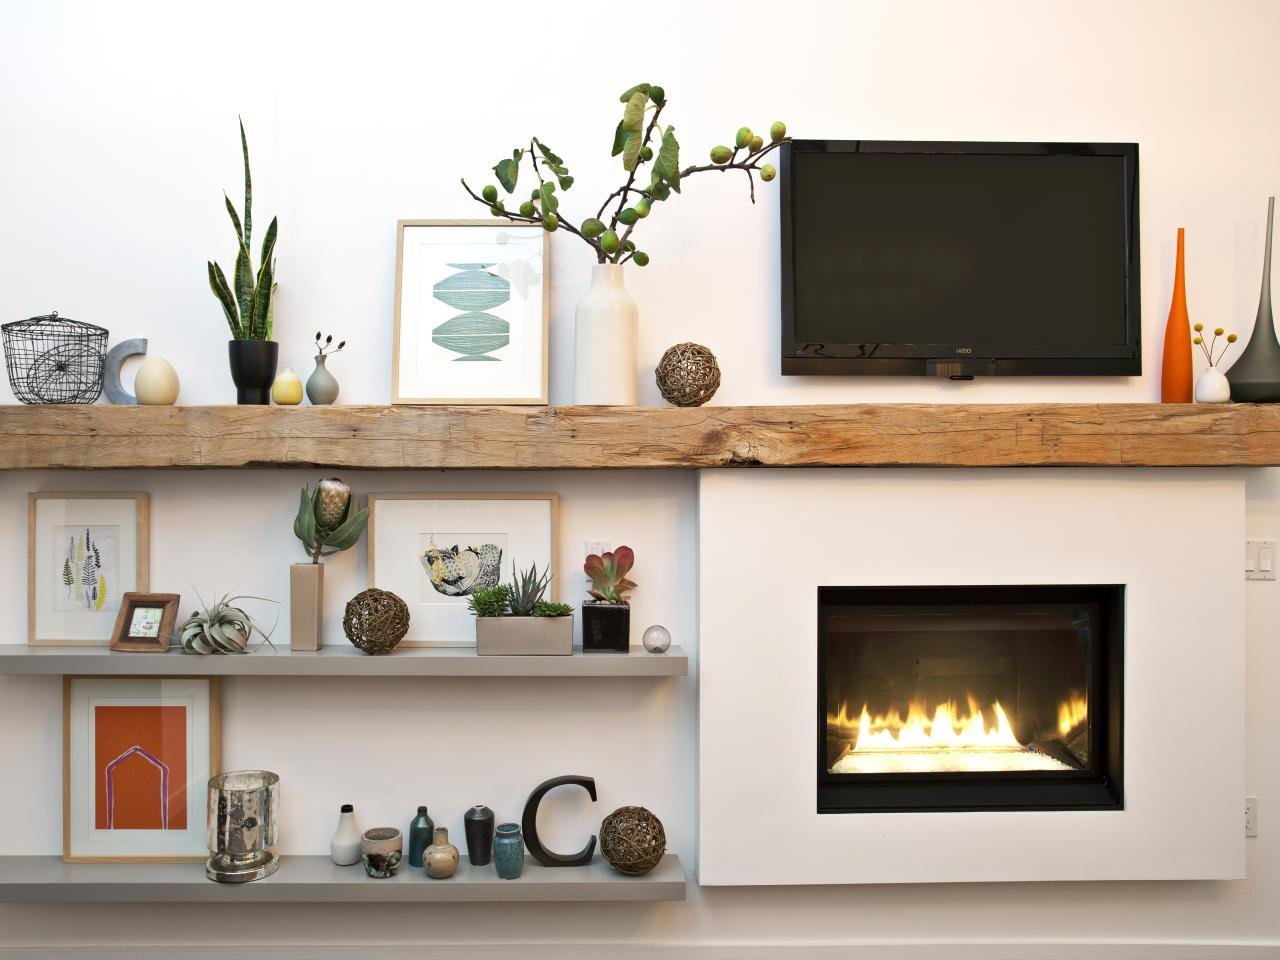 Modern Living Room Decorating Ideas Fireplace 15 Ideas for Decorating Your Mantel Year Round